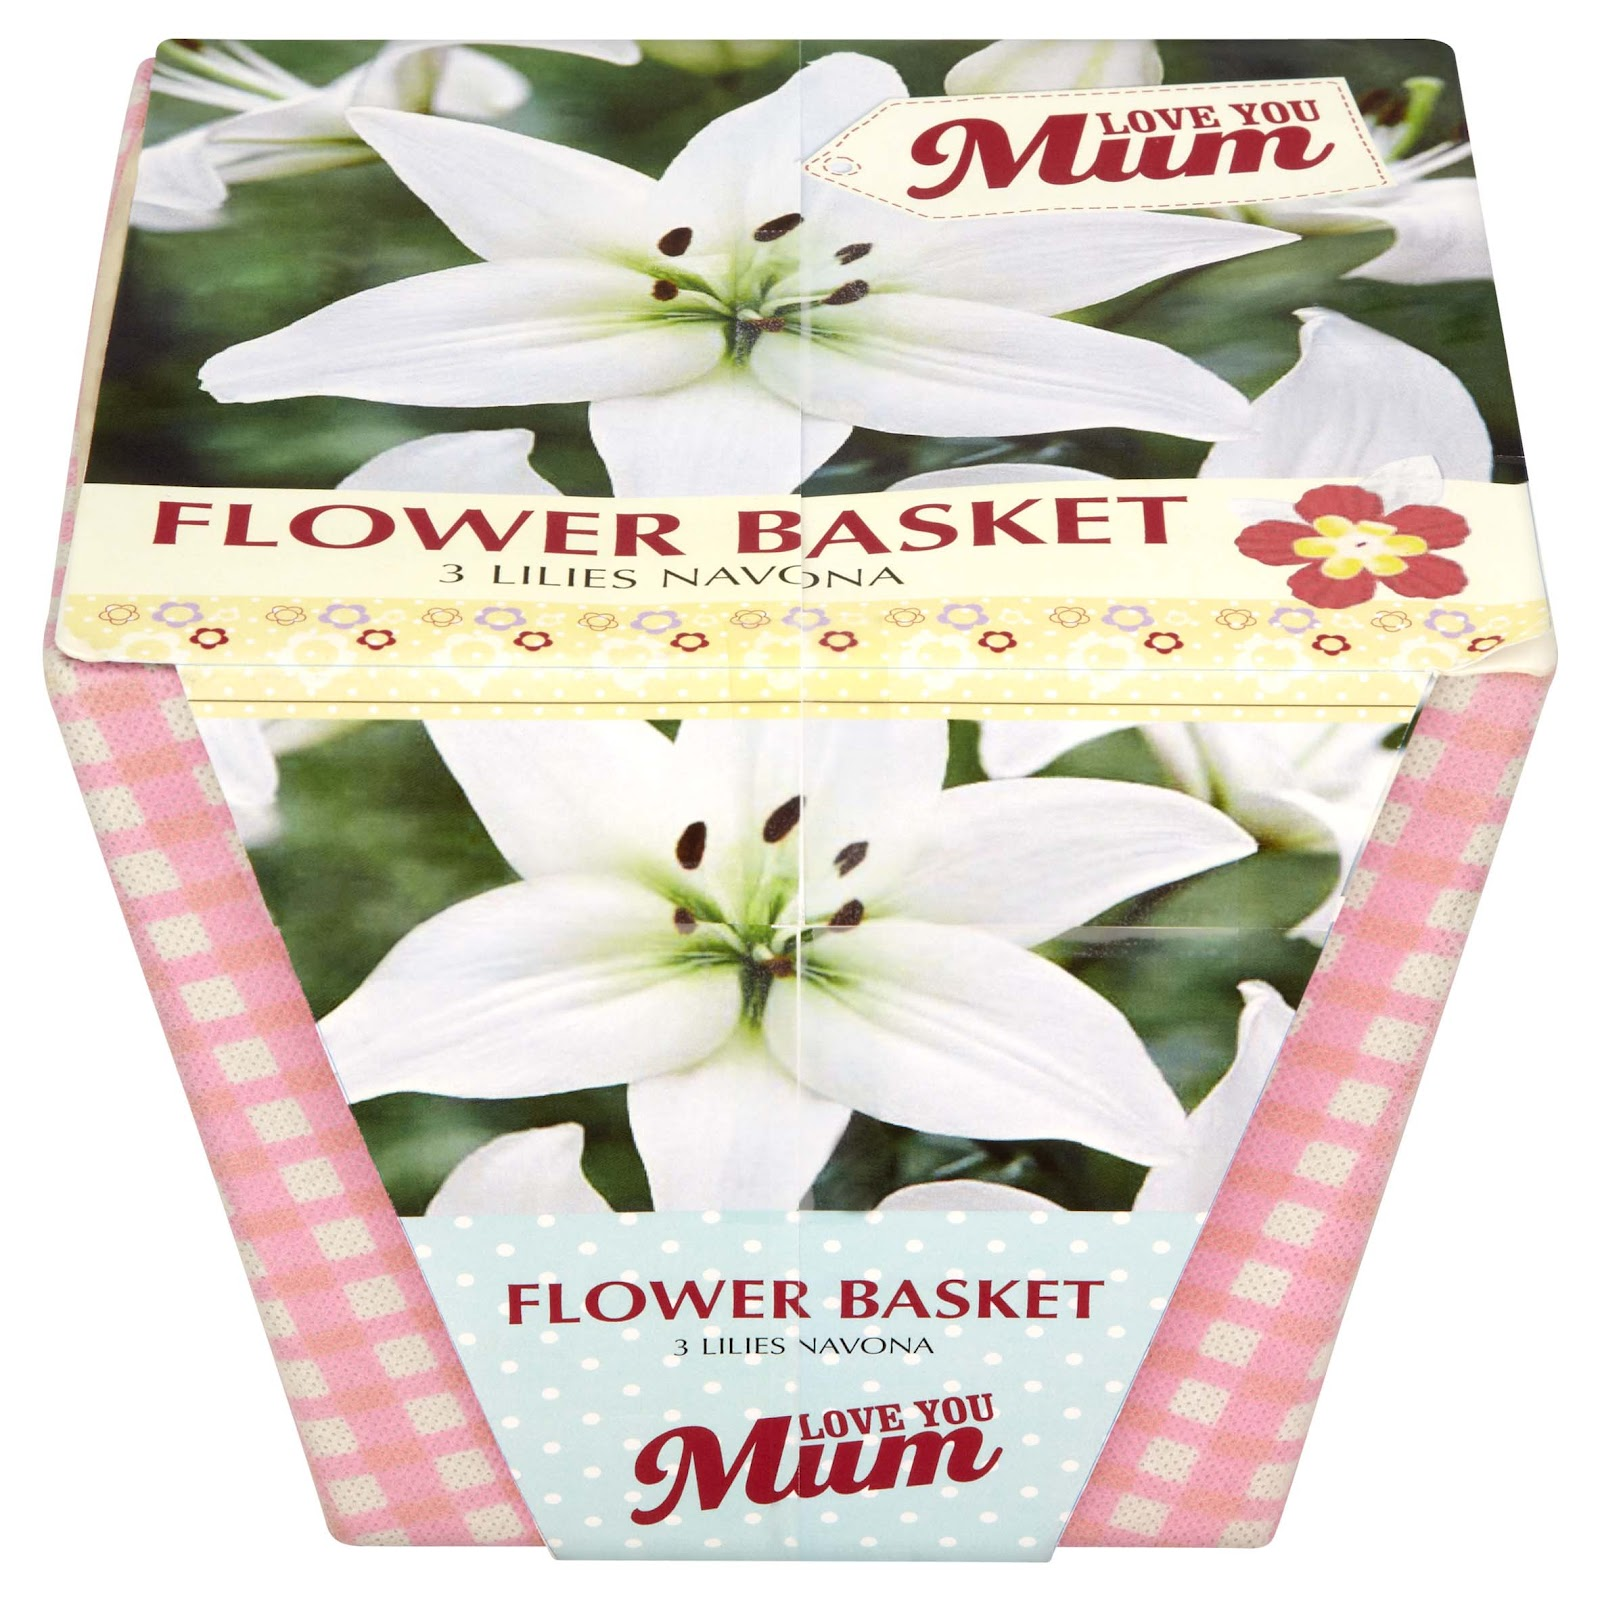 Inside the wendy house mothers day gift ideas from asda grow your own flowers negle Images